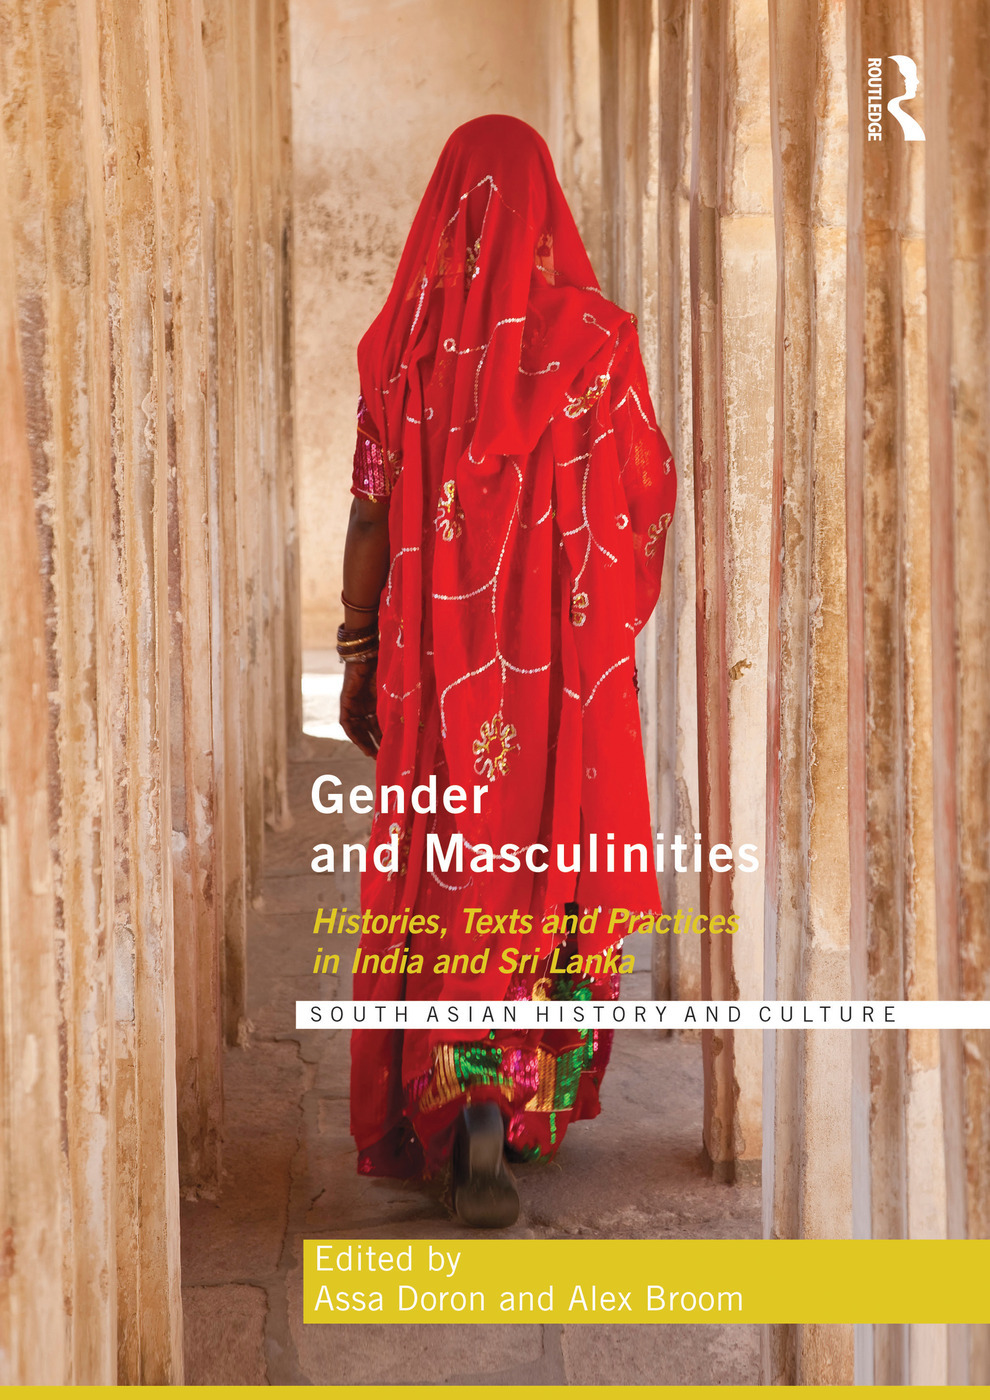 gender and masculinities histories texts and practices in india and sri lanka